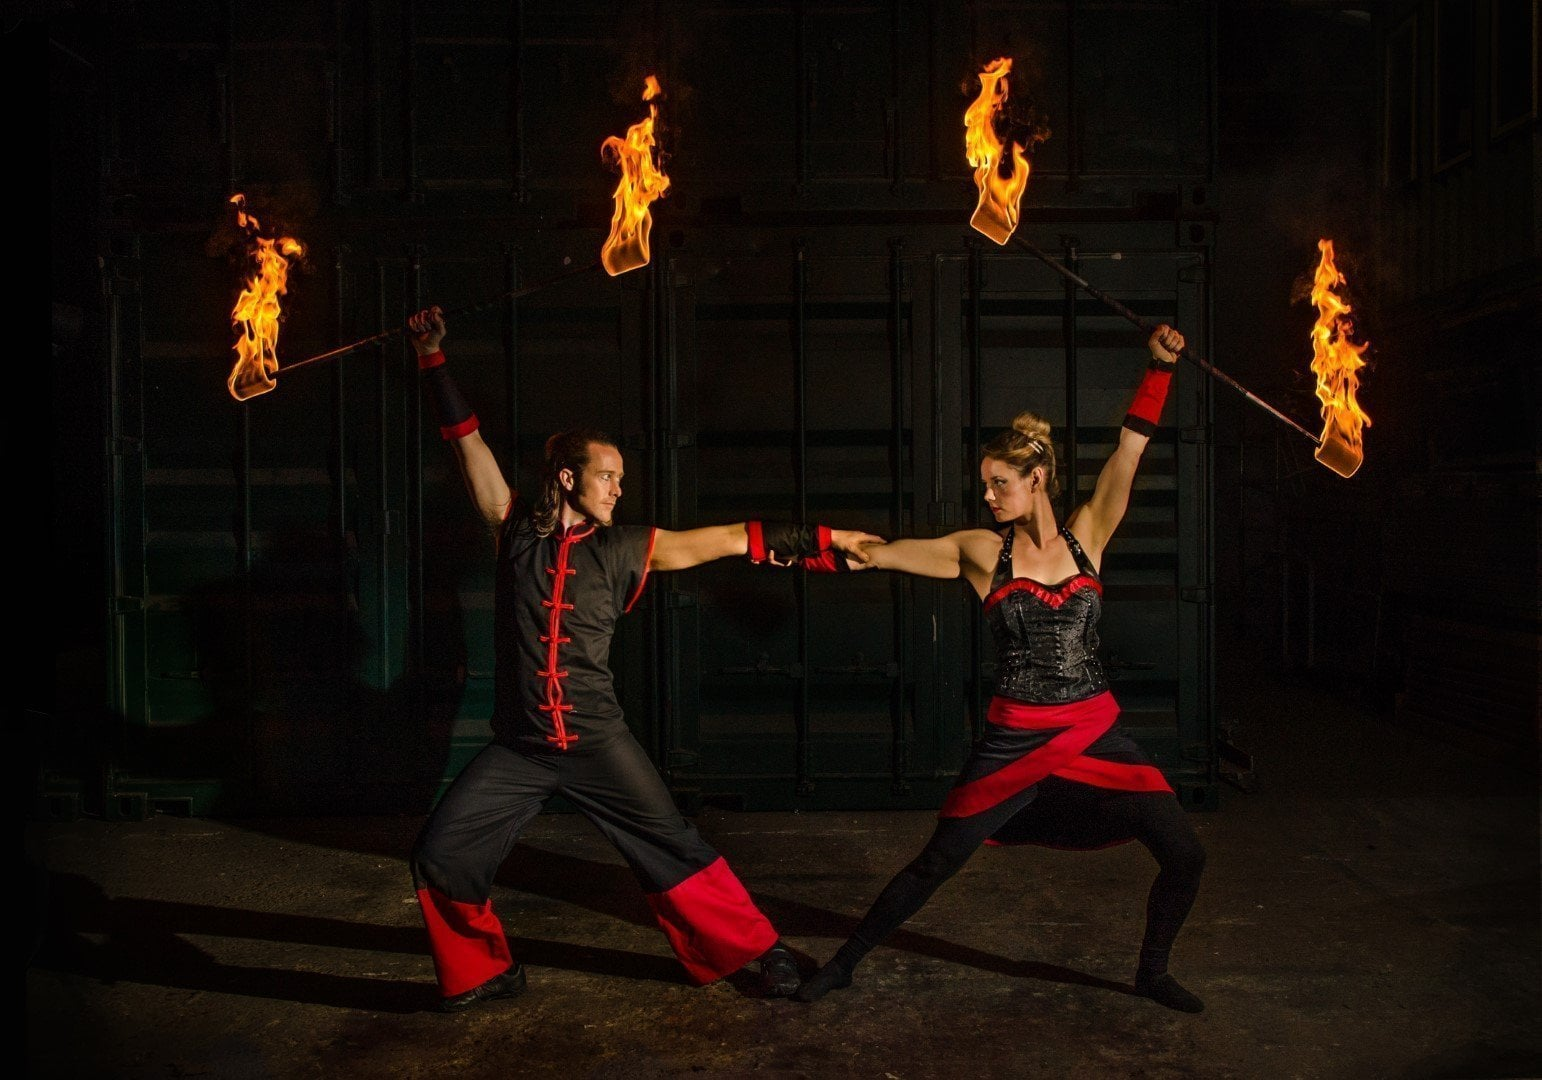 Fire Circus Act